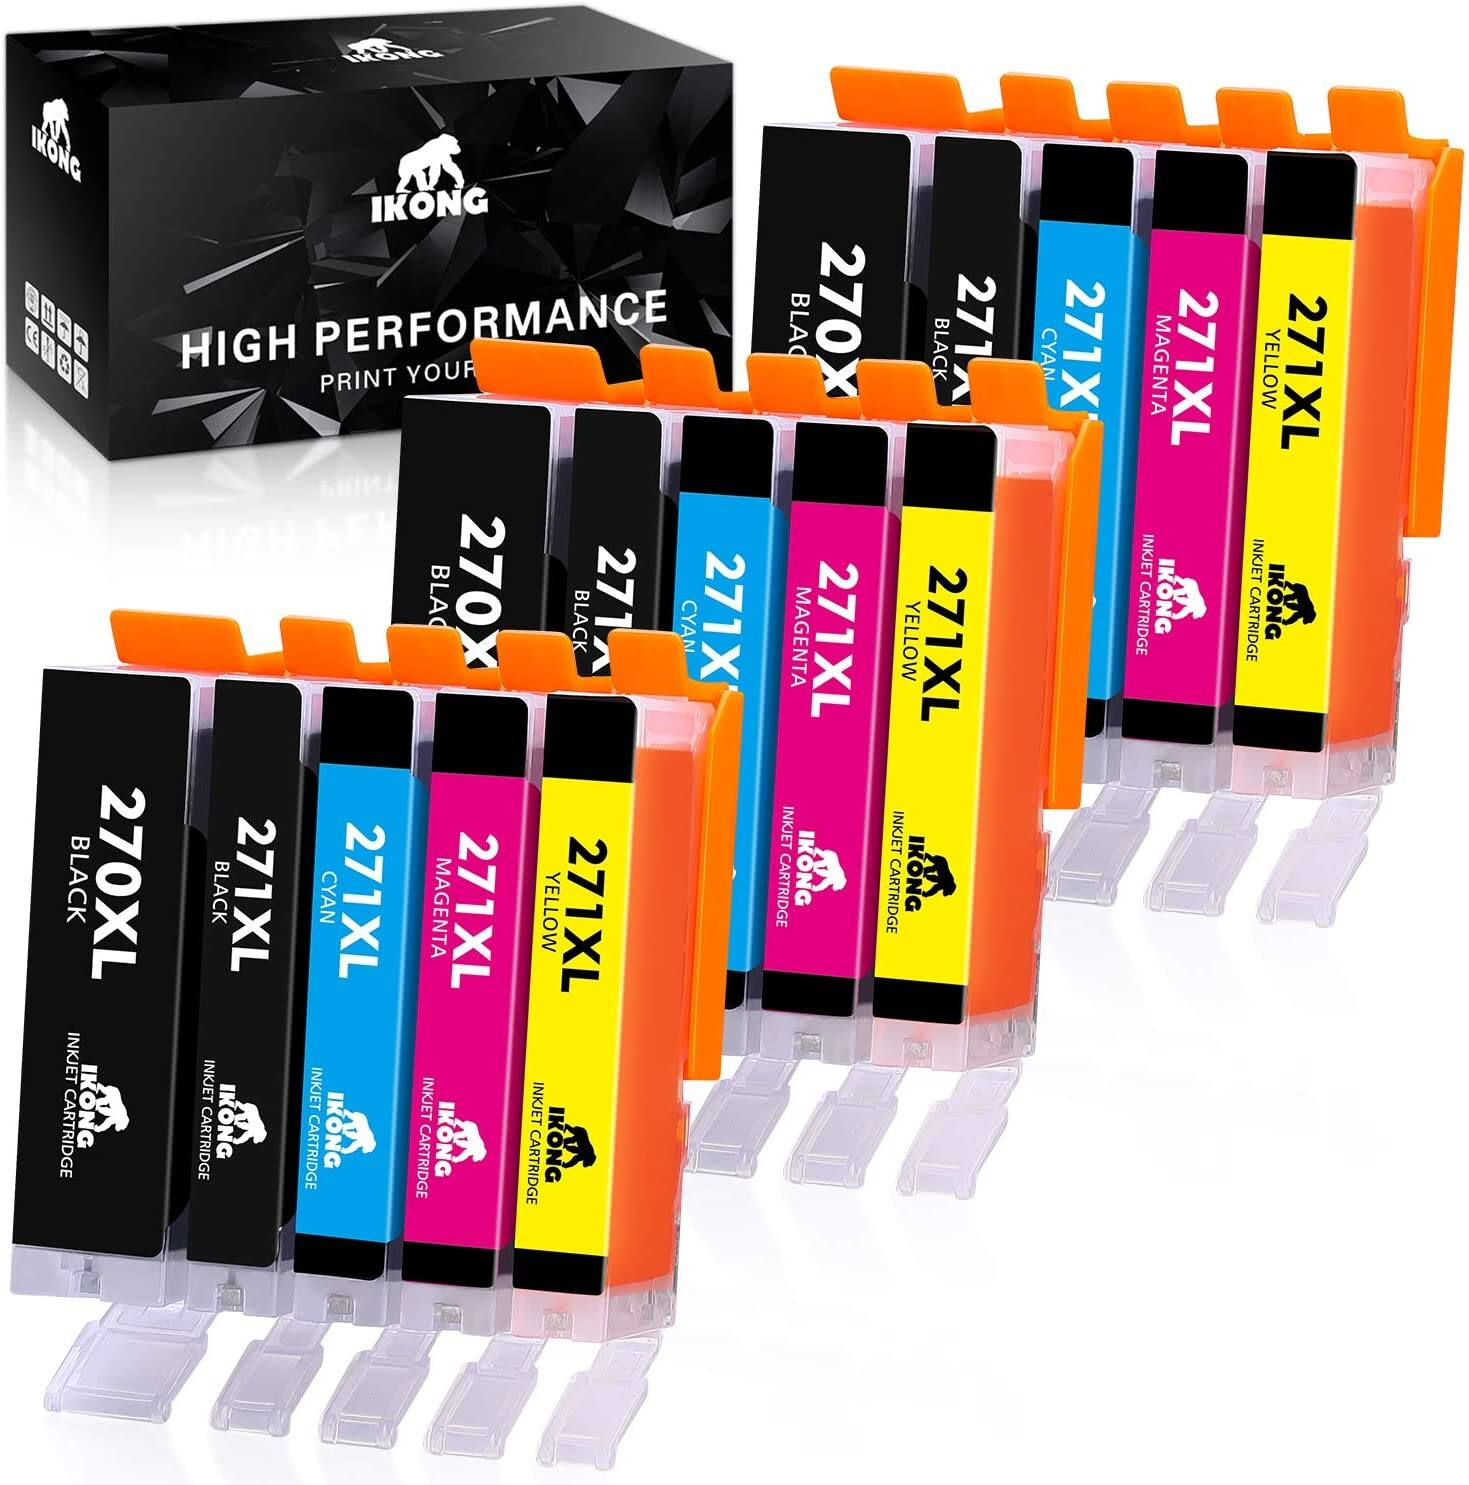 15x ink Cartridges (3 Complete Sets) for Canon Pixma PGI-270XL CLI-271XL $9.12 Shipped w/Prime Compatible Canon 270 and 271